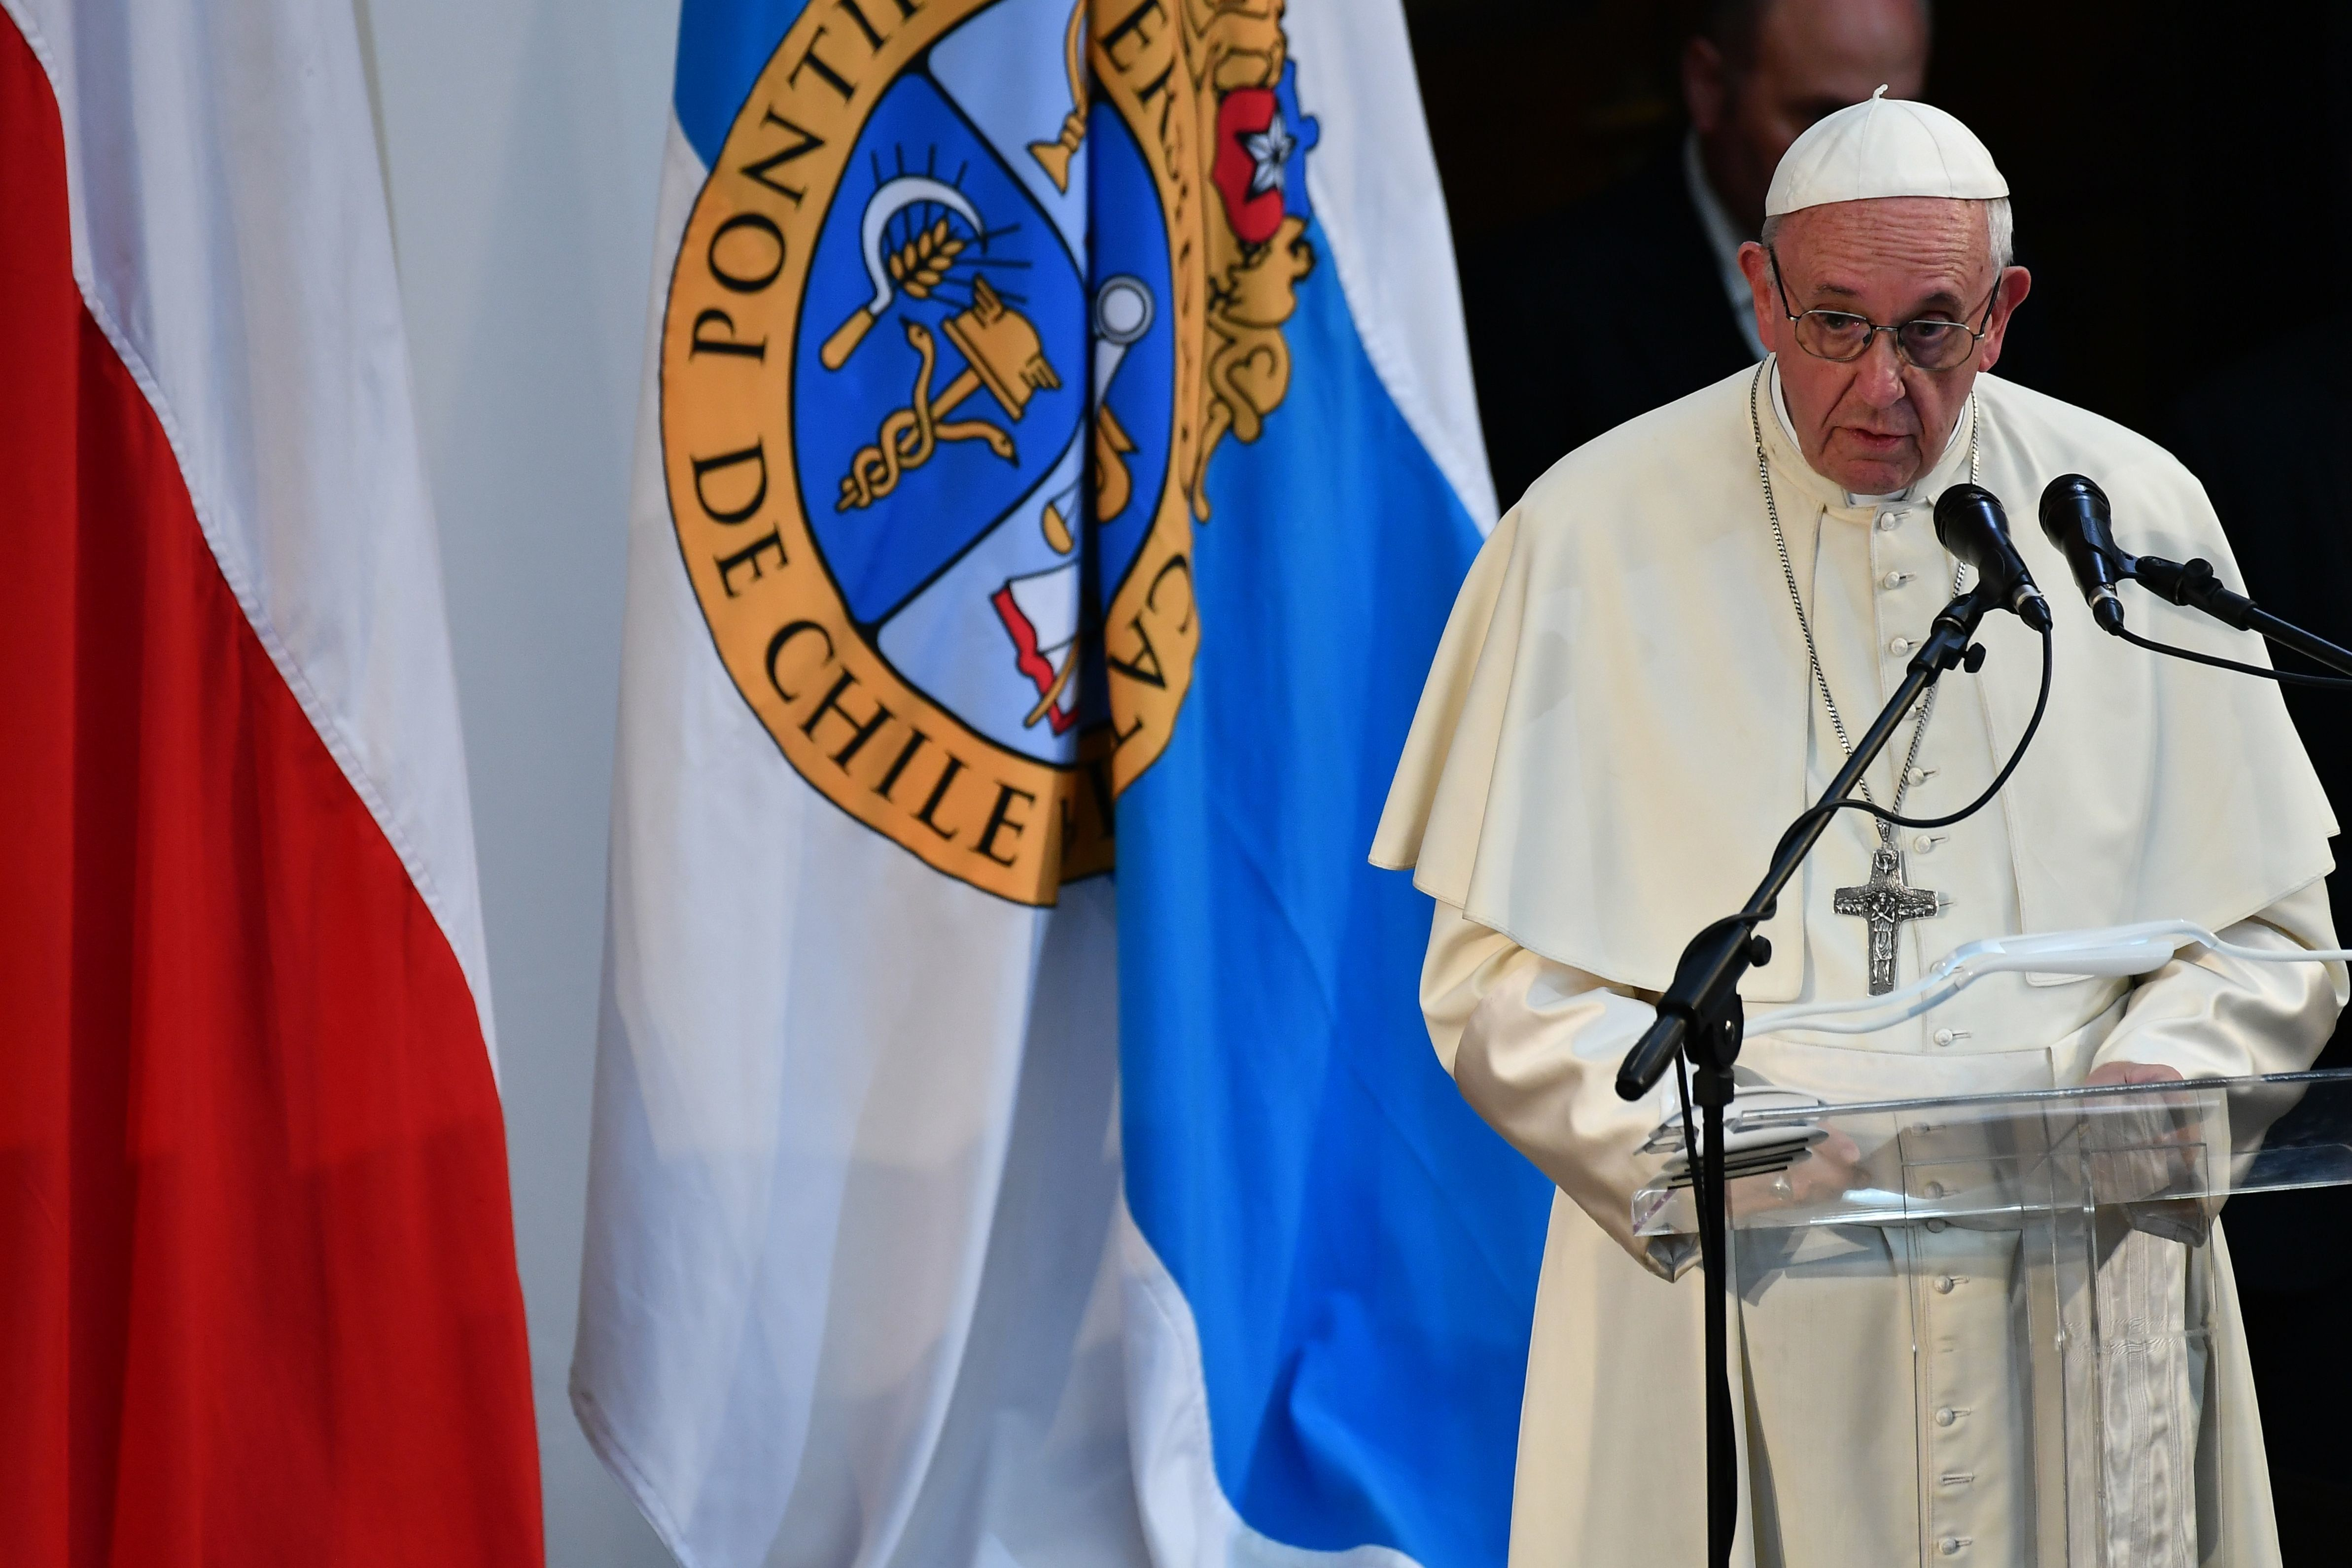 Pope Francis speaks at the Pontifical Catholic University of Chile, in Santiago on January 17, 2018. Pope Francis denounced the use of violence in the struggle for indigenous rights Wednesday, celebrating mass in a restive region of Chile, before heading back to Santiago to meet with young faithfuls. / AFP PHOTO / Vincenzo PINTO        (Photo credit should read VINCENZO PINTO/AFP/Getty Images)